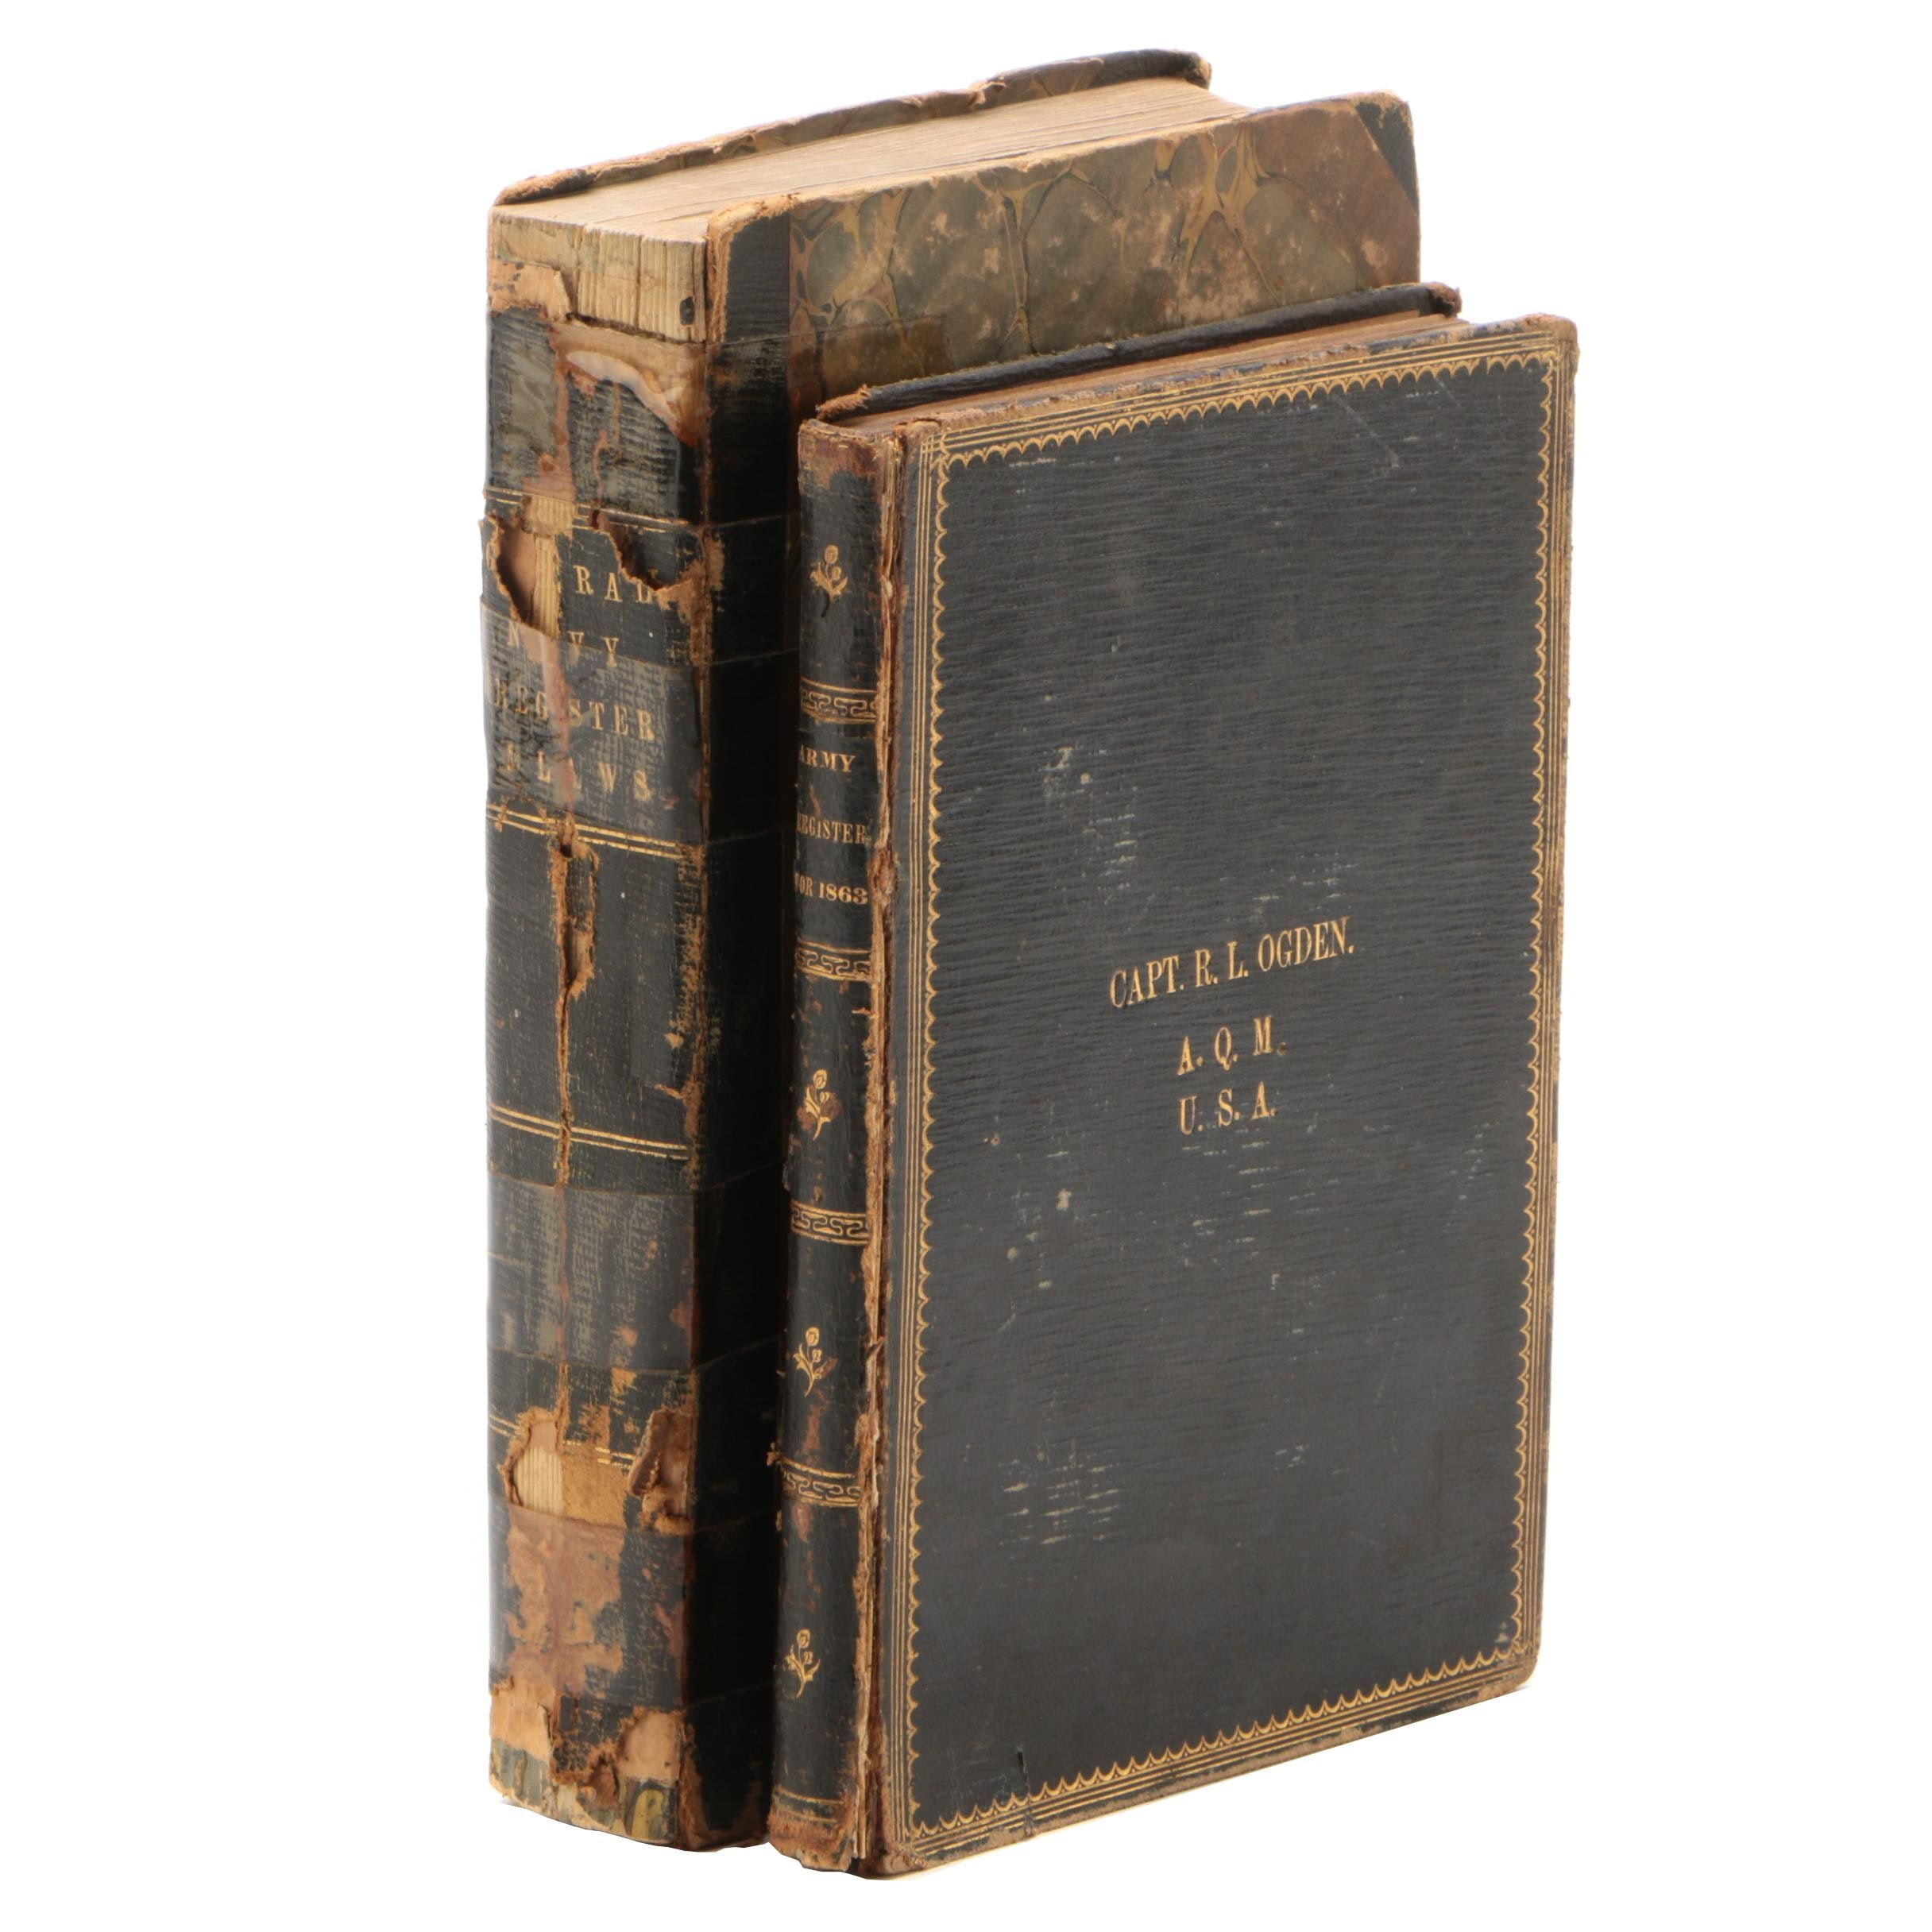 American Military Register Books, 1848 and 1863